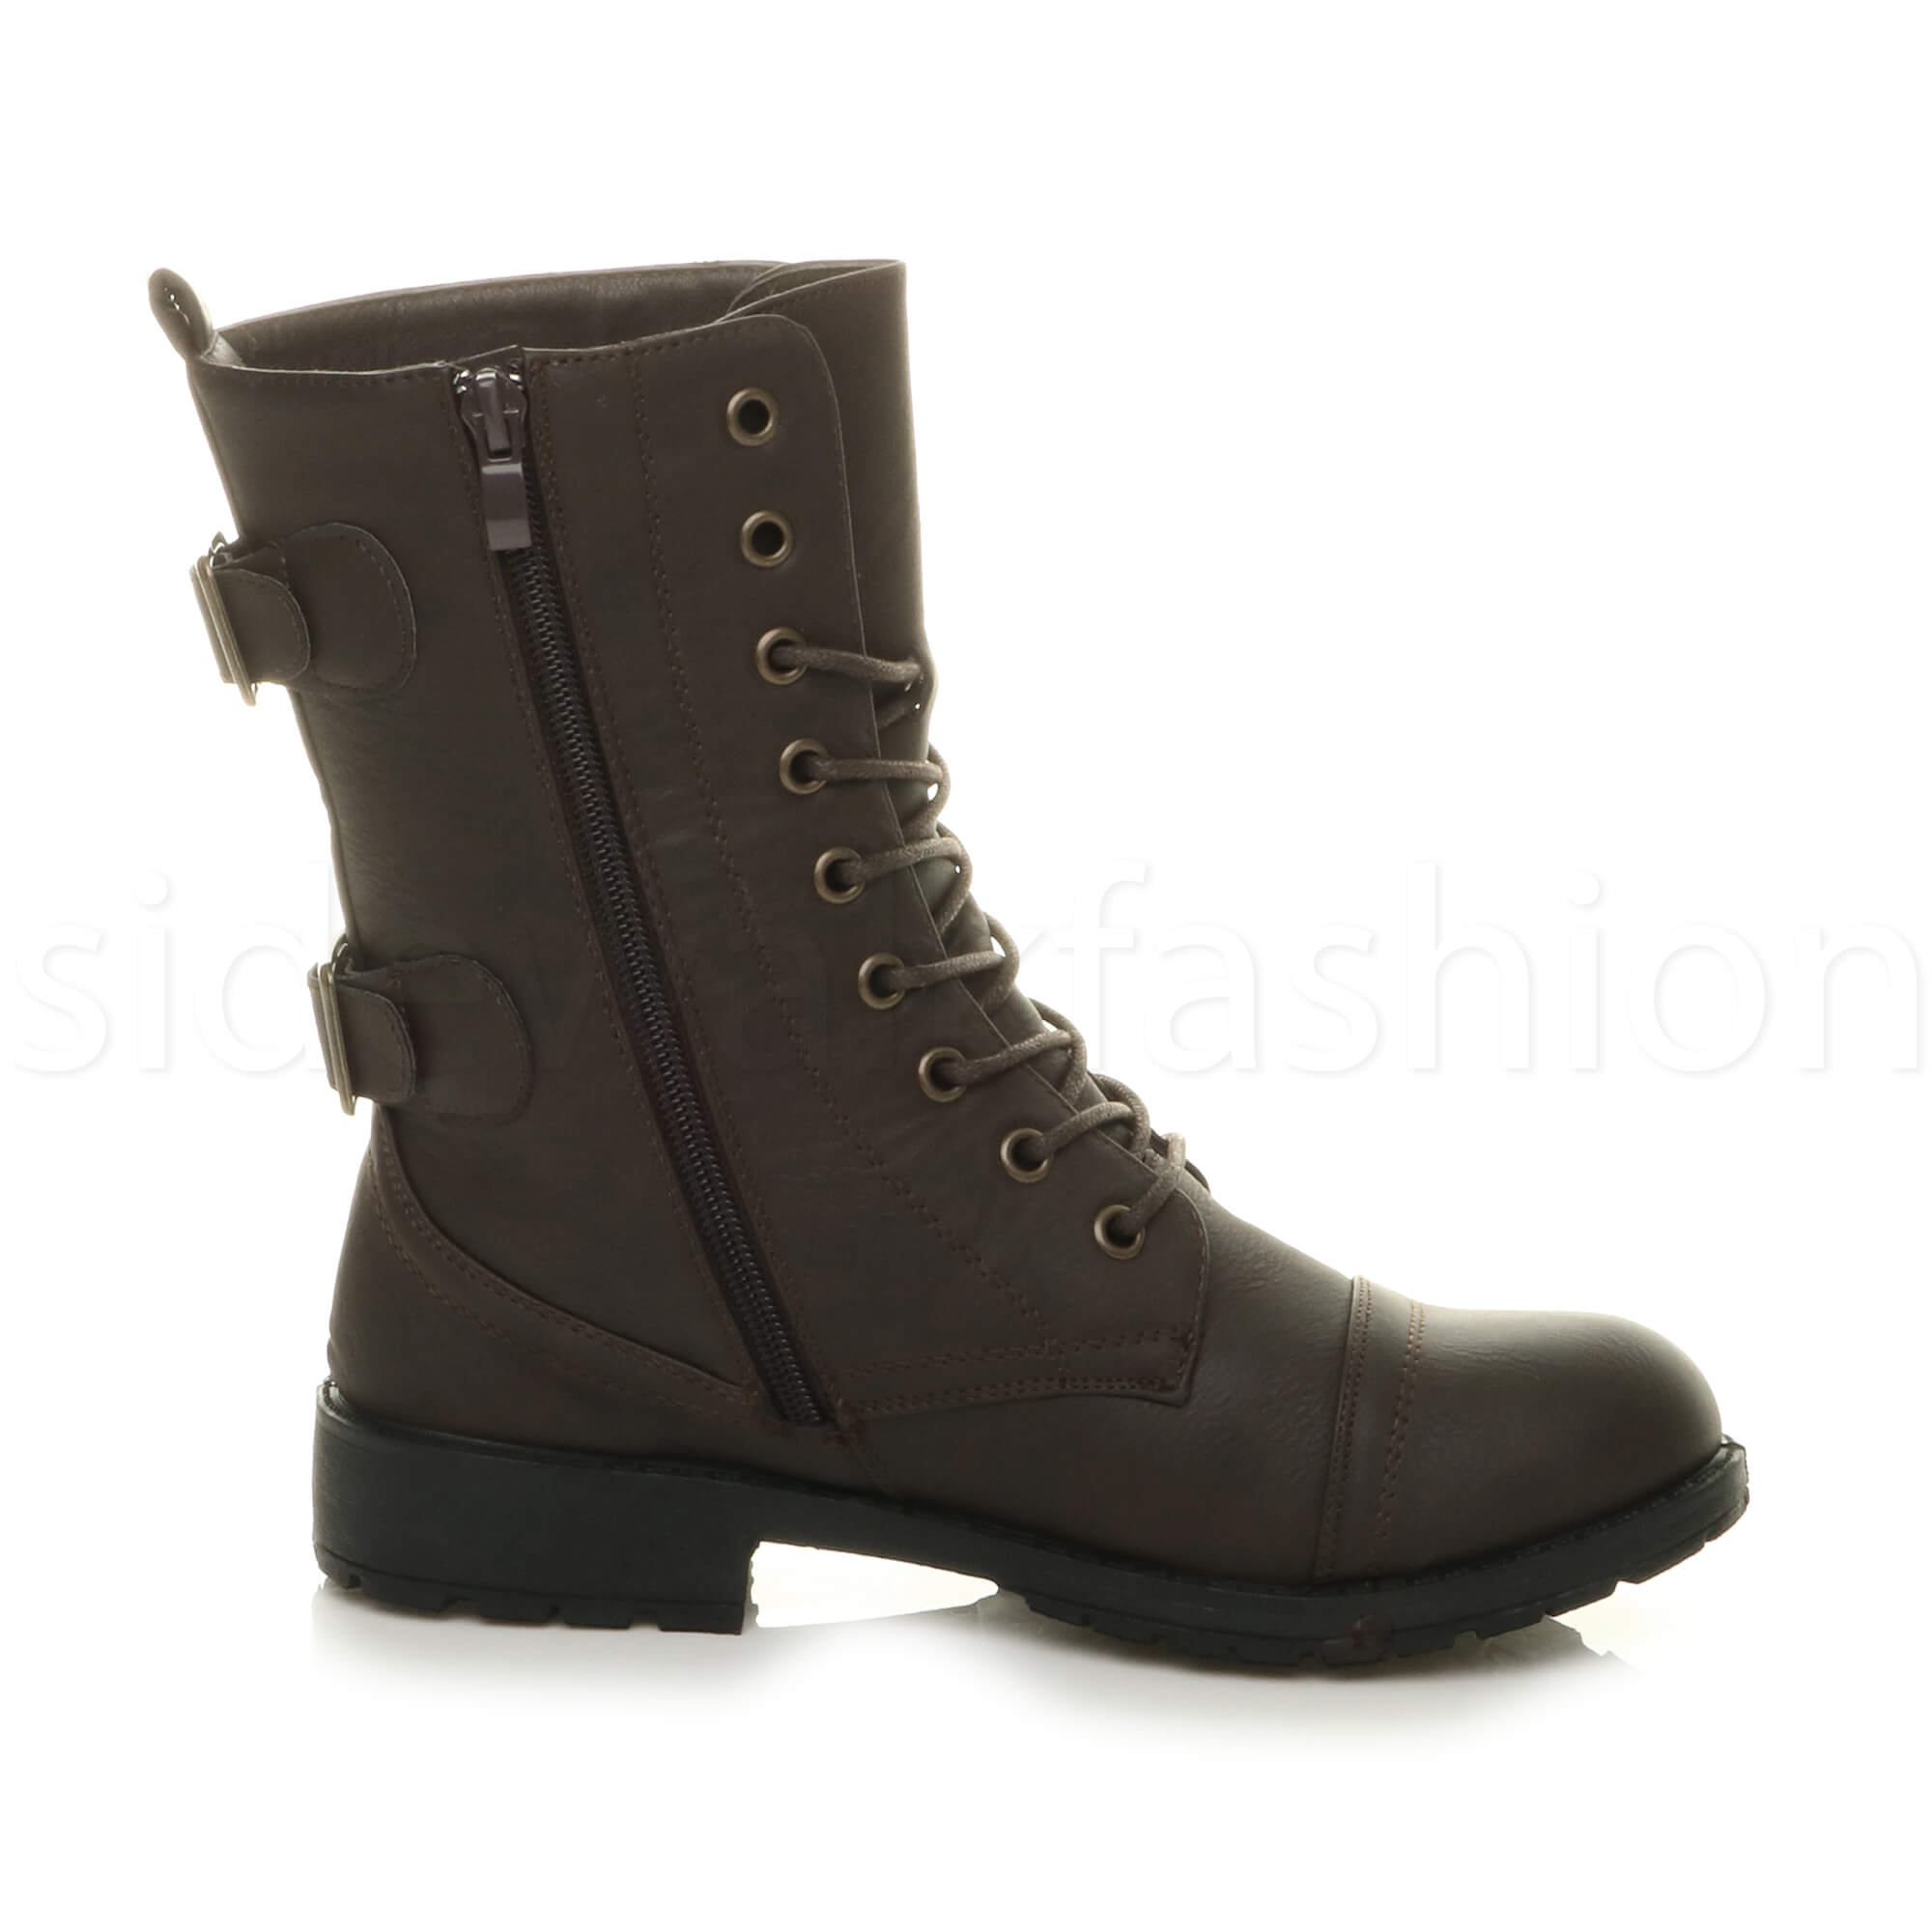 Womens-ladies-low-heel-flat-lace-up-zip-combat-biker-military-ankle-boots-size thumbnail 36